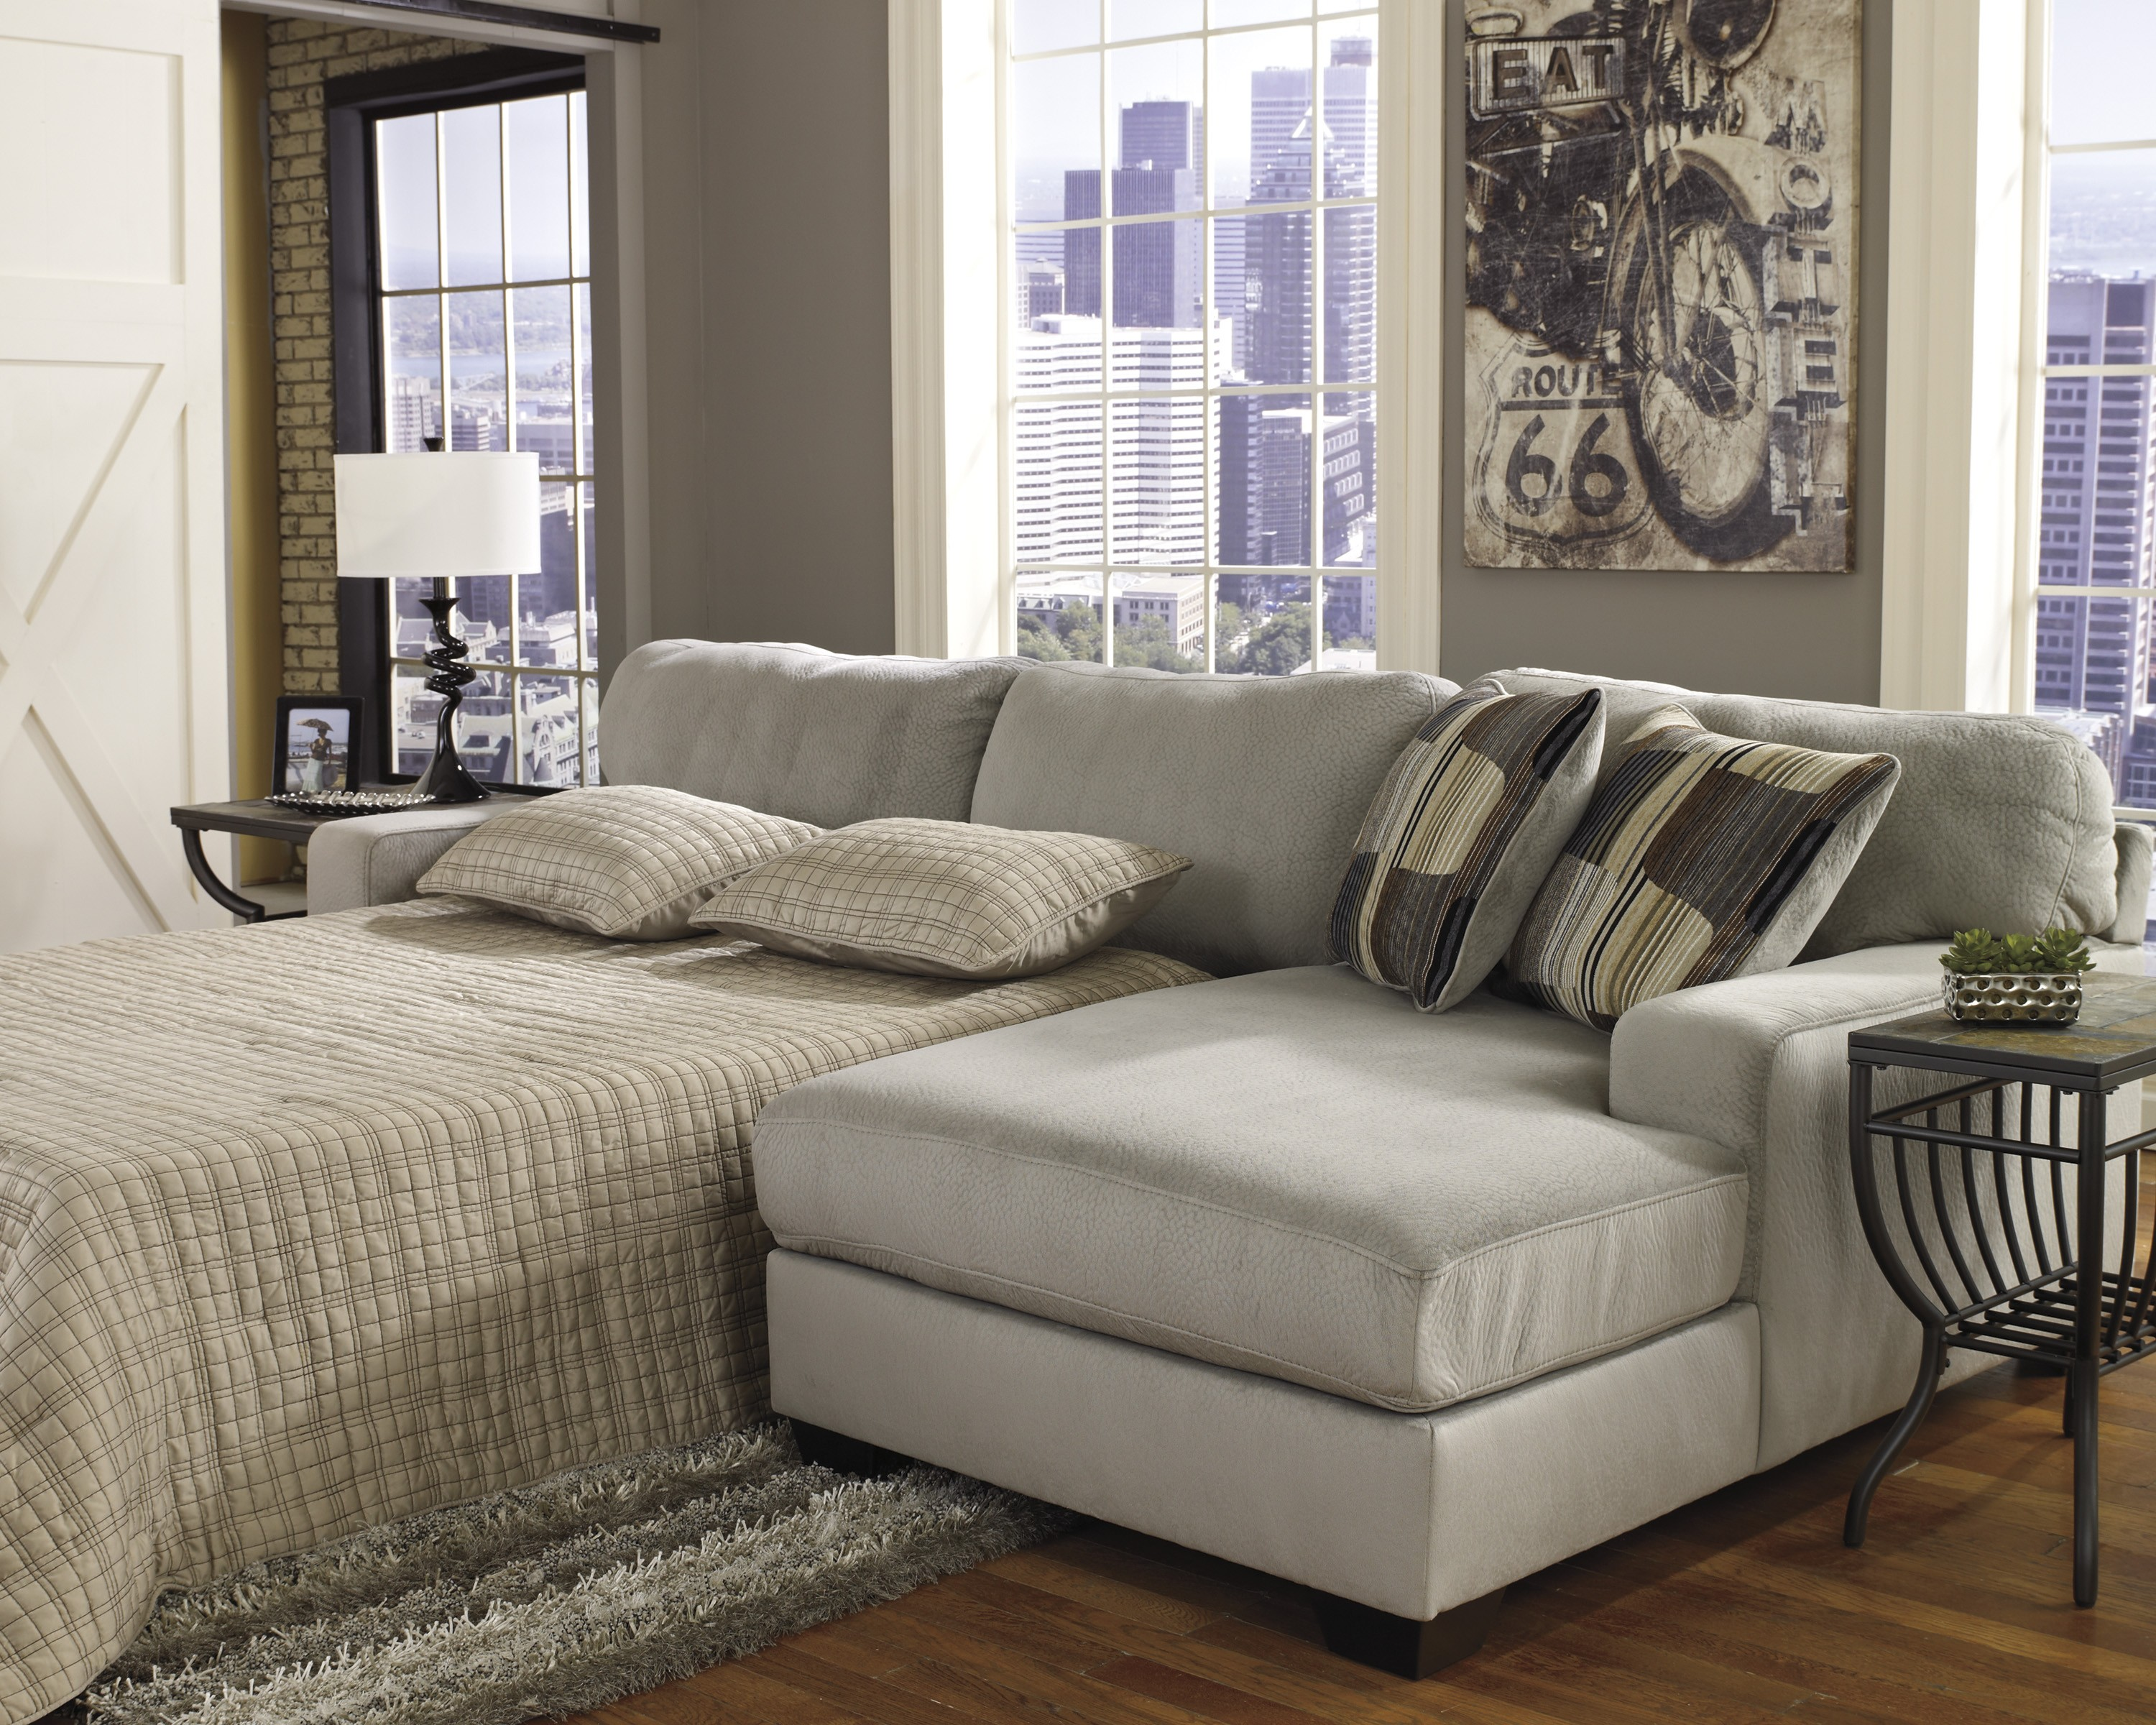 Decorating: Comfortable Sectional Sleeper Sofa For Living Room ...